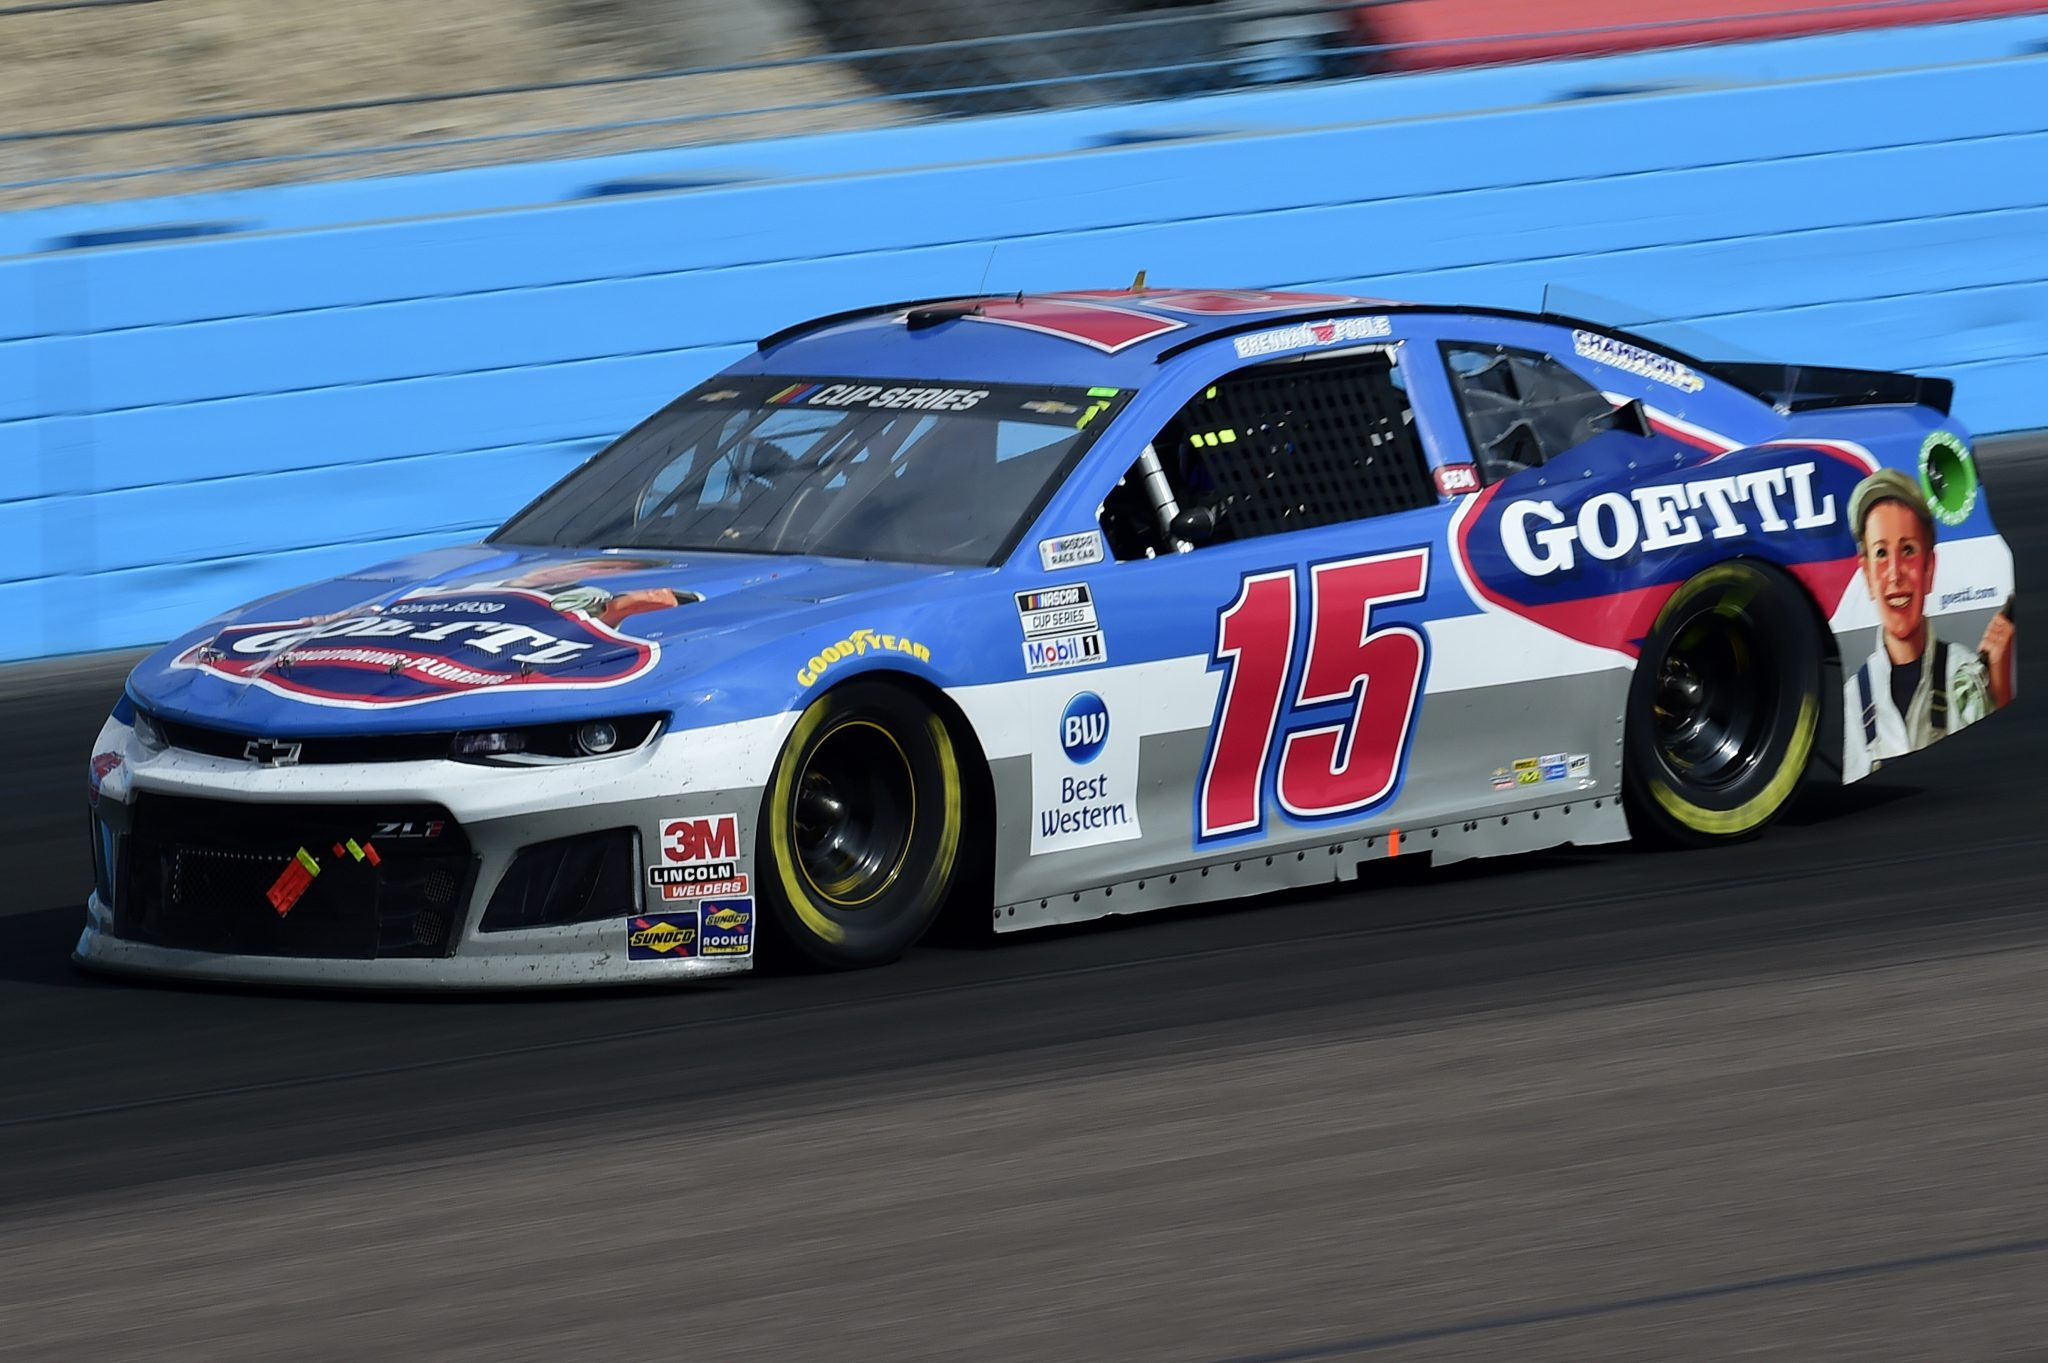 AVONDALE, ARIZONA - NOVEMBER 08: Brennan Poole, driver of the #15 Chevrolet, drives during the NASCAR Cup Series Season Finale 500 at Phoenix Raceway on November 08, 2020 in Avondale, Arizona. (Photo by Jared C. Tilton/Getty Images) | Getty Images